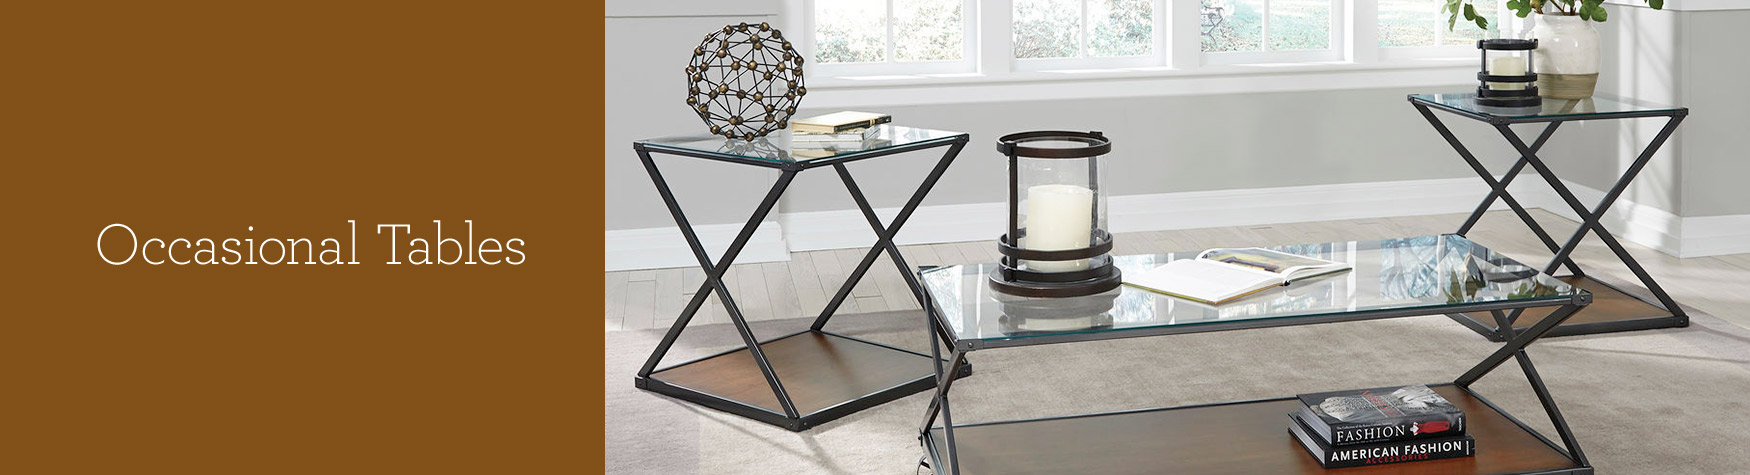 occasional-tables-banner.jpg